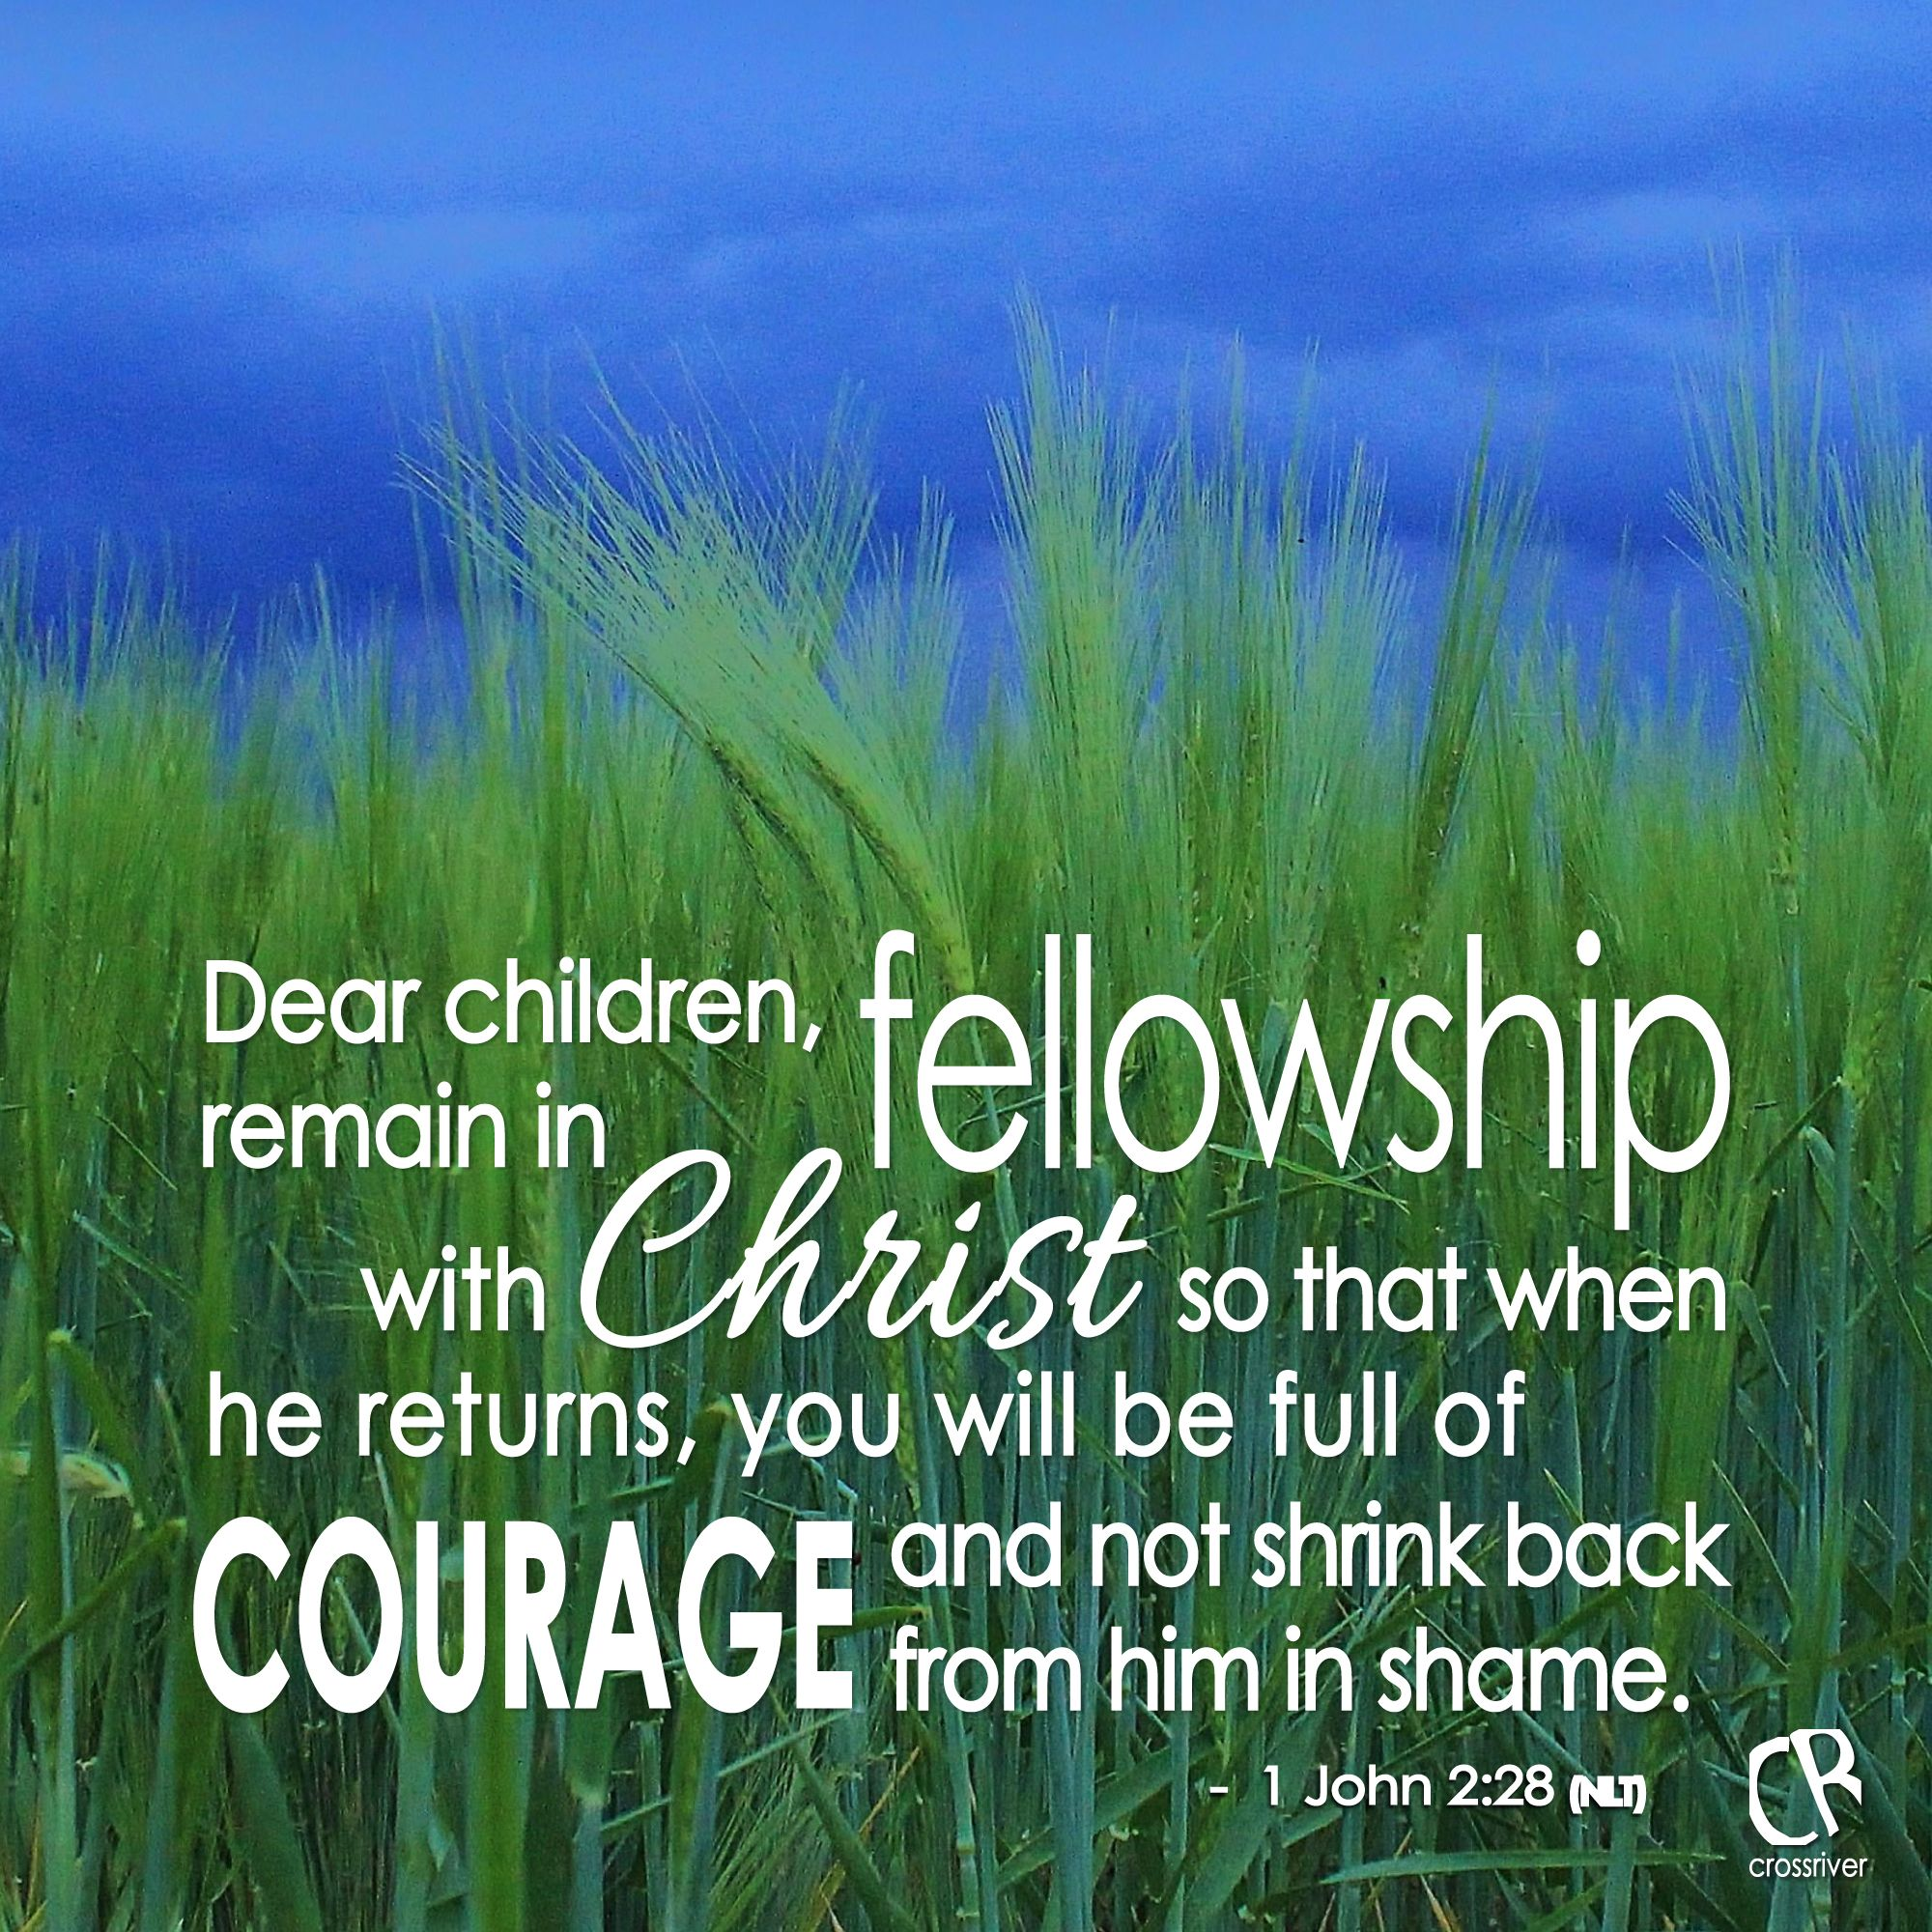 And now, dear children, remain in fellowship with Christ so that when he returns, you will be full of courage and not shrink back from him in shame. - 1 John 2:28 #NLT #Bible verse | CrossRiverMedia.com